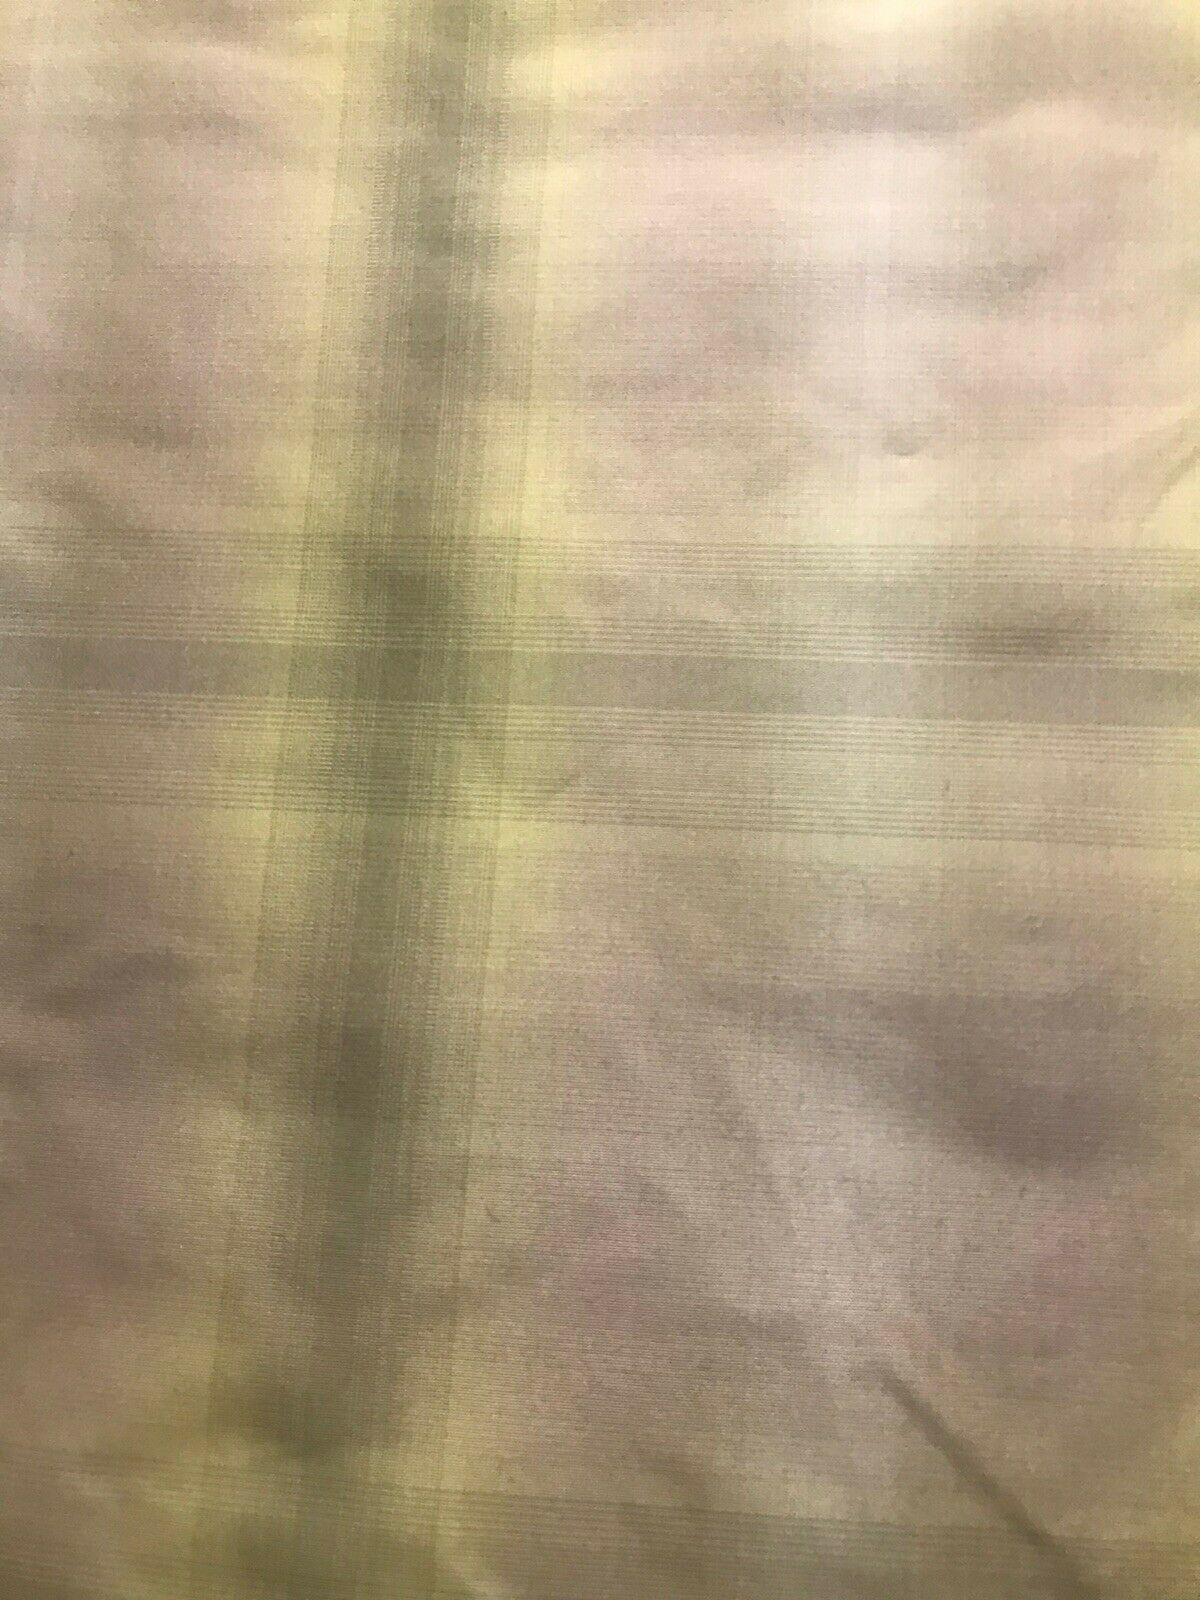 NEW Designer 100% Silk Taffeta Dupioni Faded Plaid Tartan Fabric -Green Pink